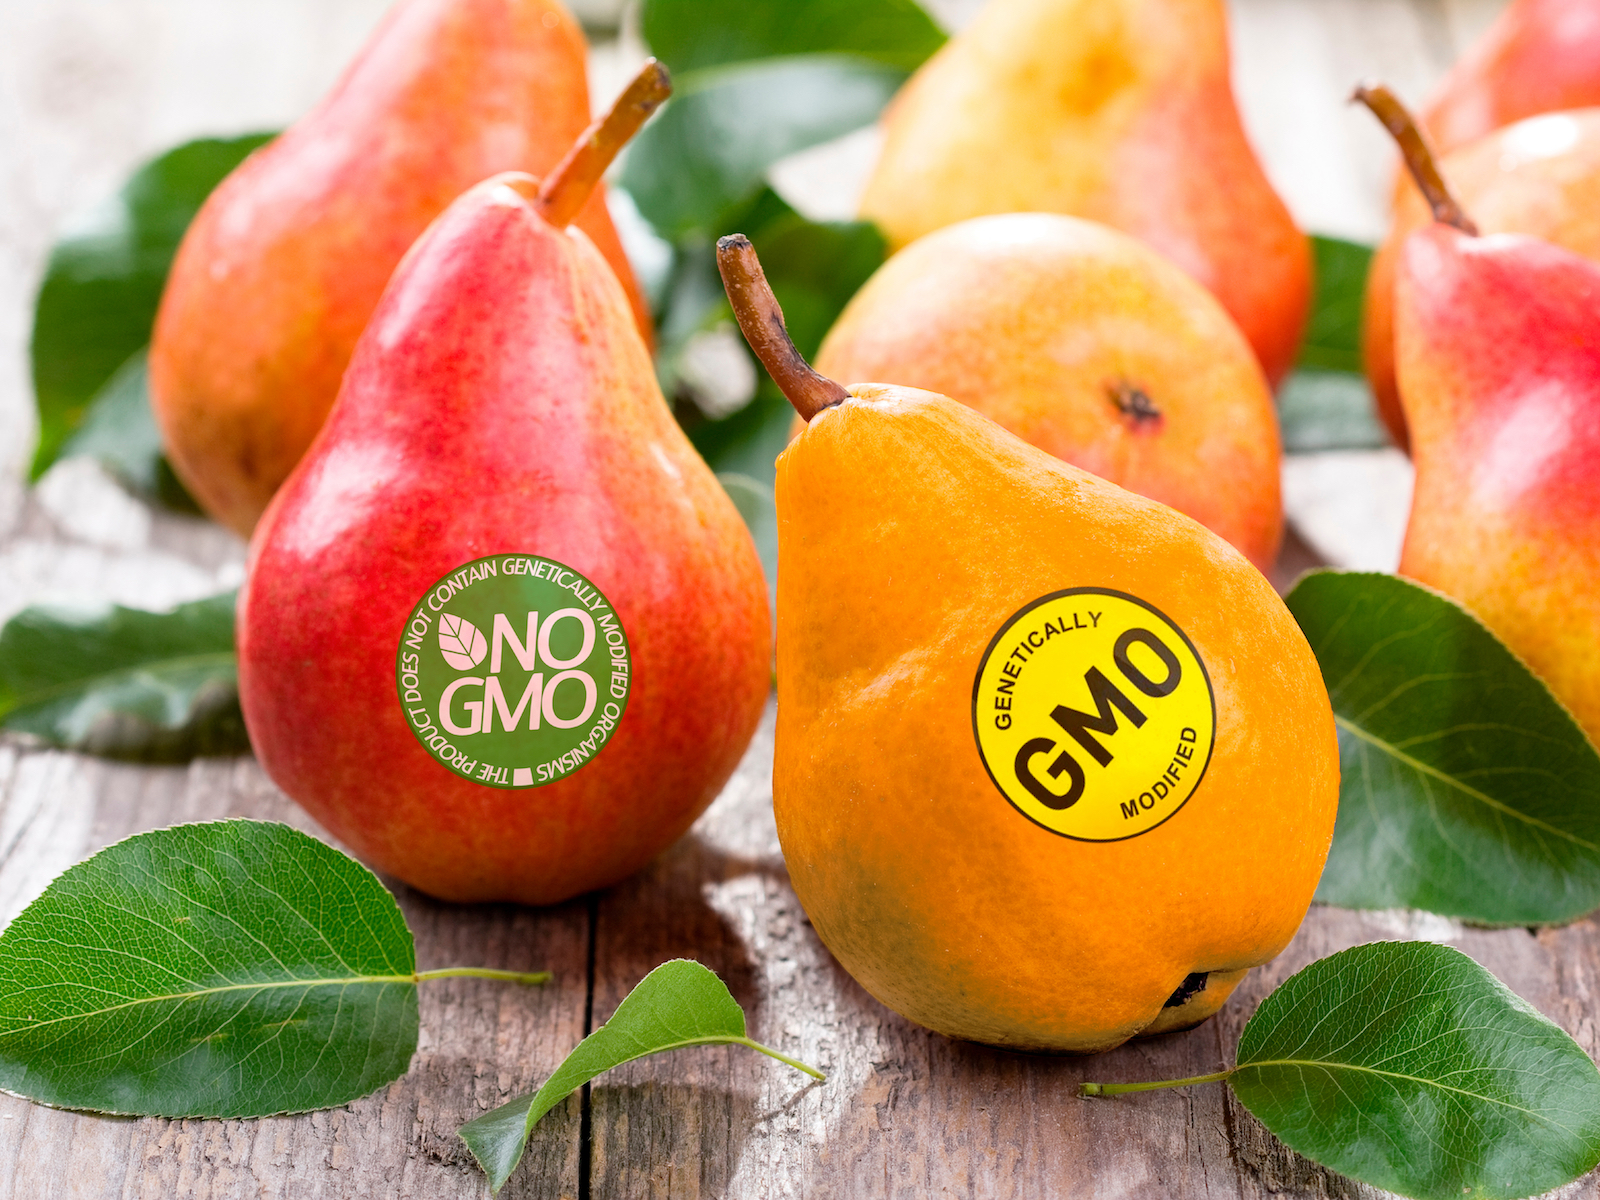 GMO Labeling Will Have to Appear on Products by 2022, USDA Says